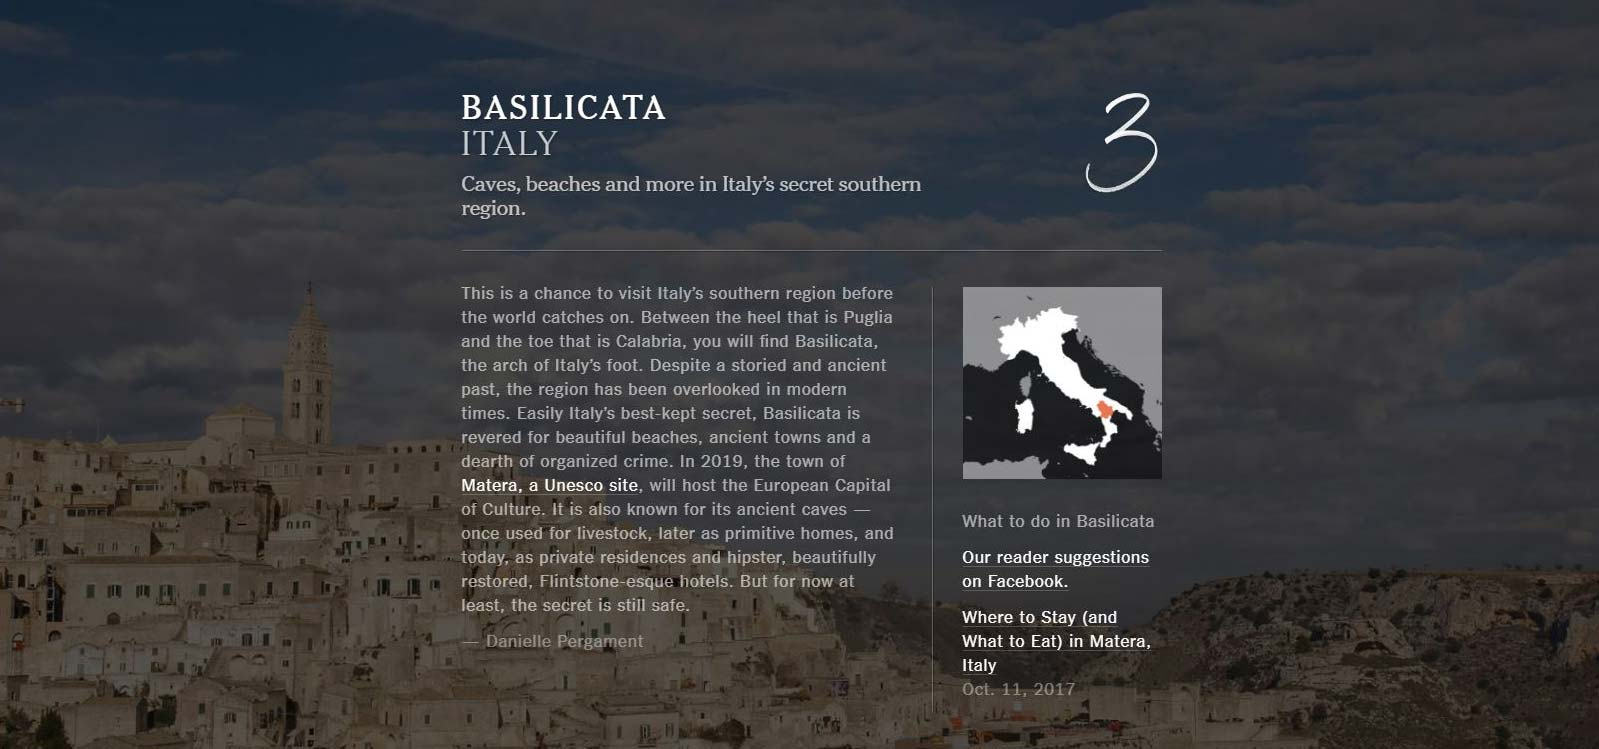 The New York Times Basilicata